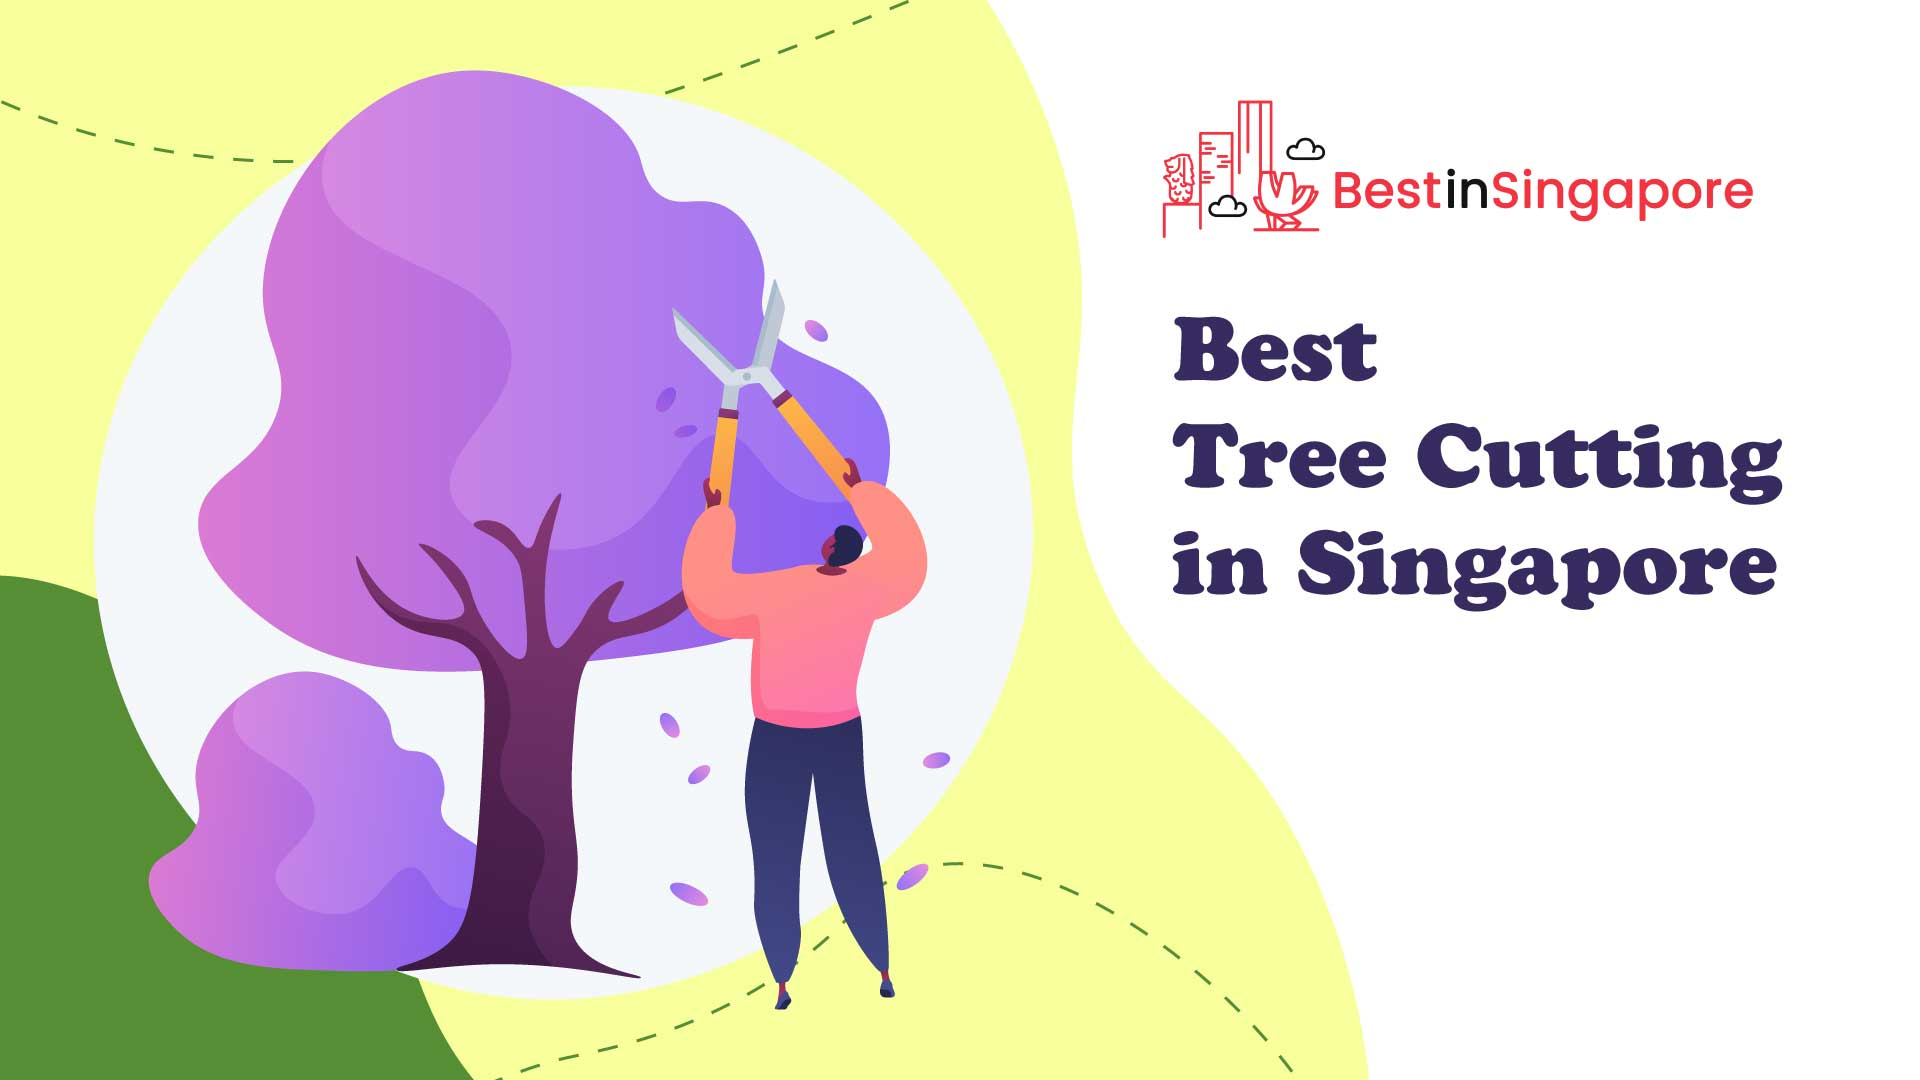 Best Tree Cutting in Singapore